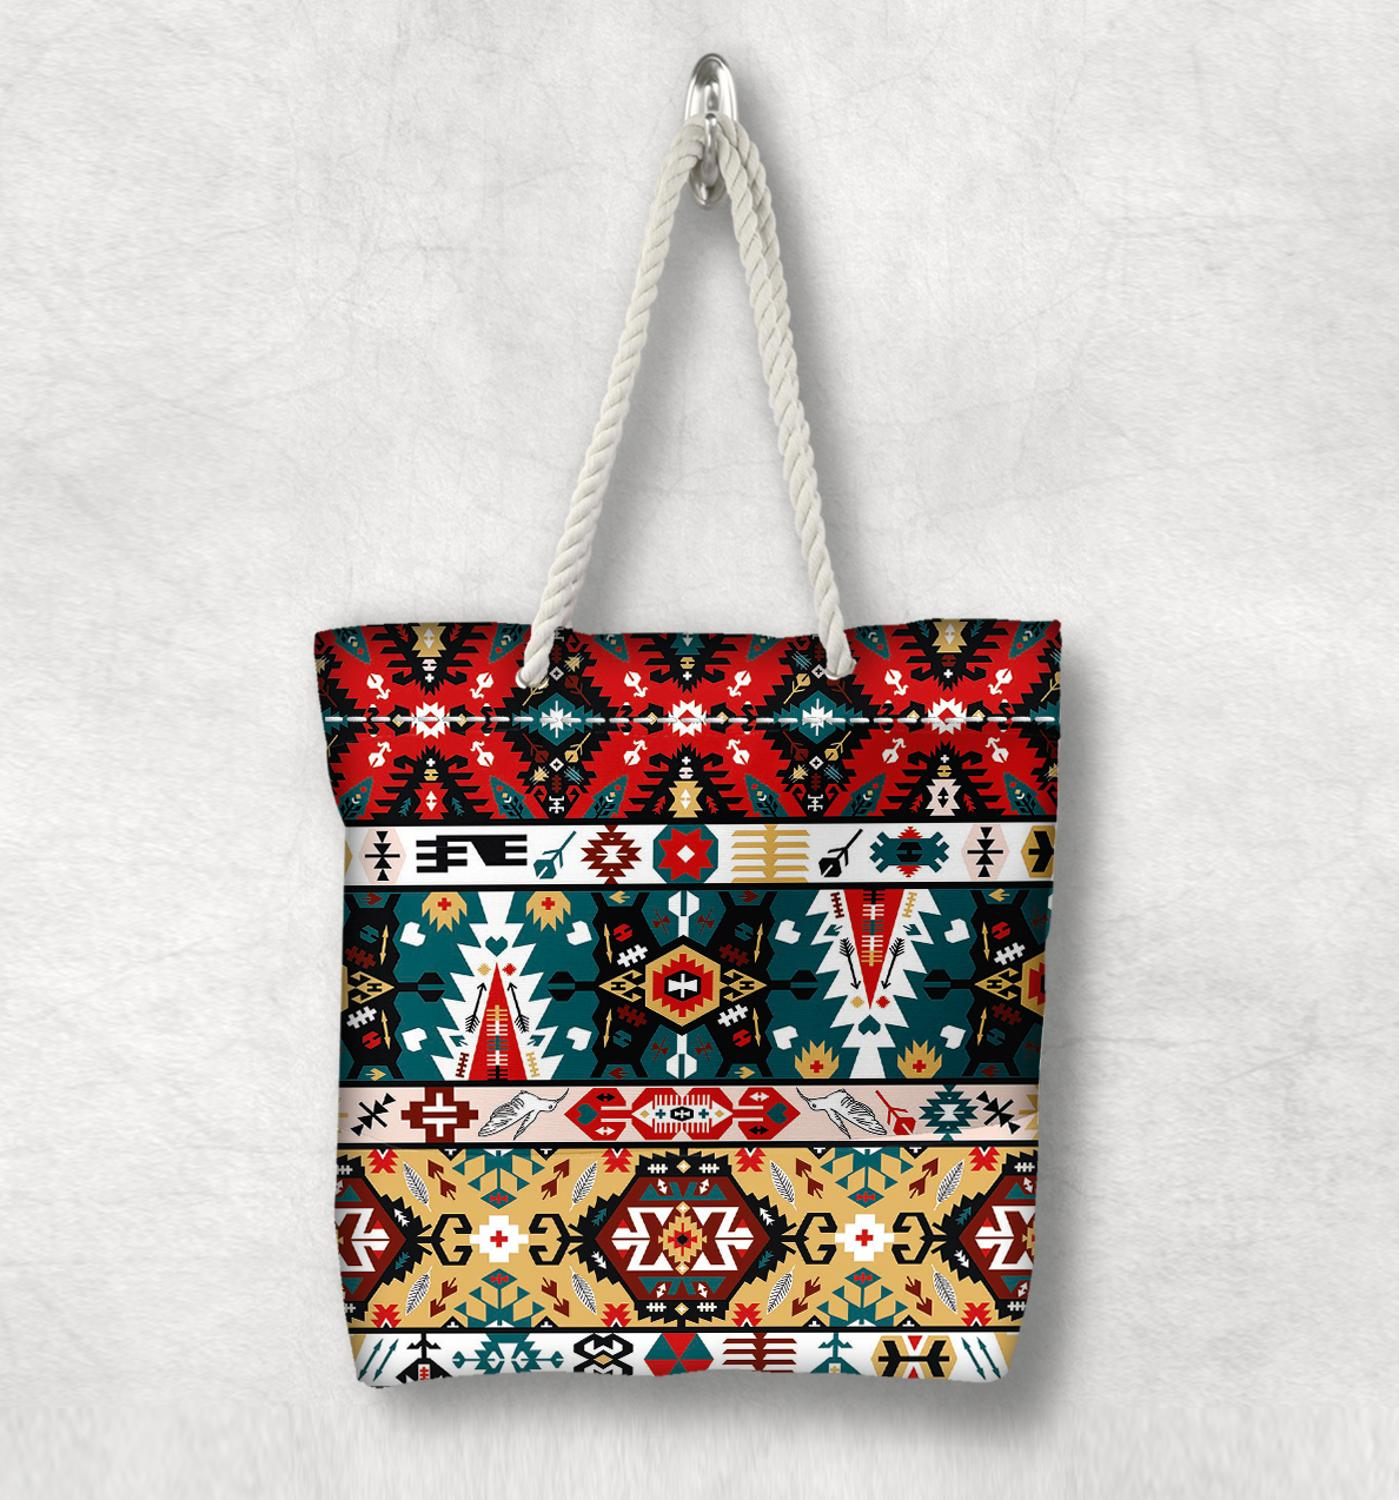 Else Red Green Aztec Bohemian Vintage New Fashion White Rope Handle Canvas Bag Cotton Canvas Zippered Tote Bag Shoulder Bag